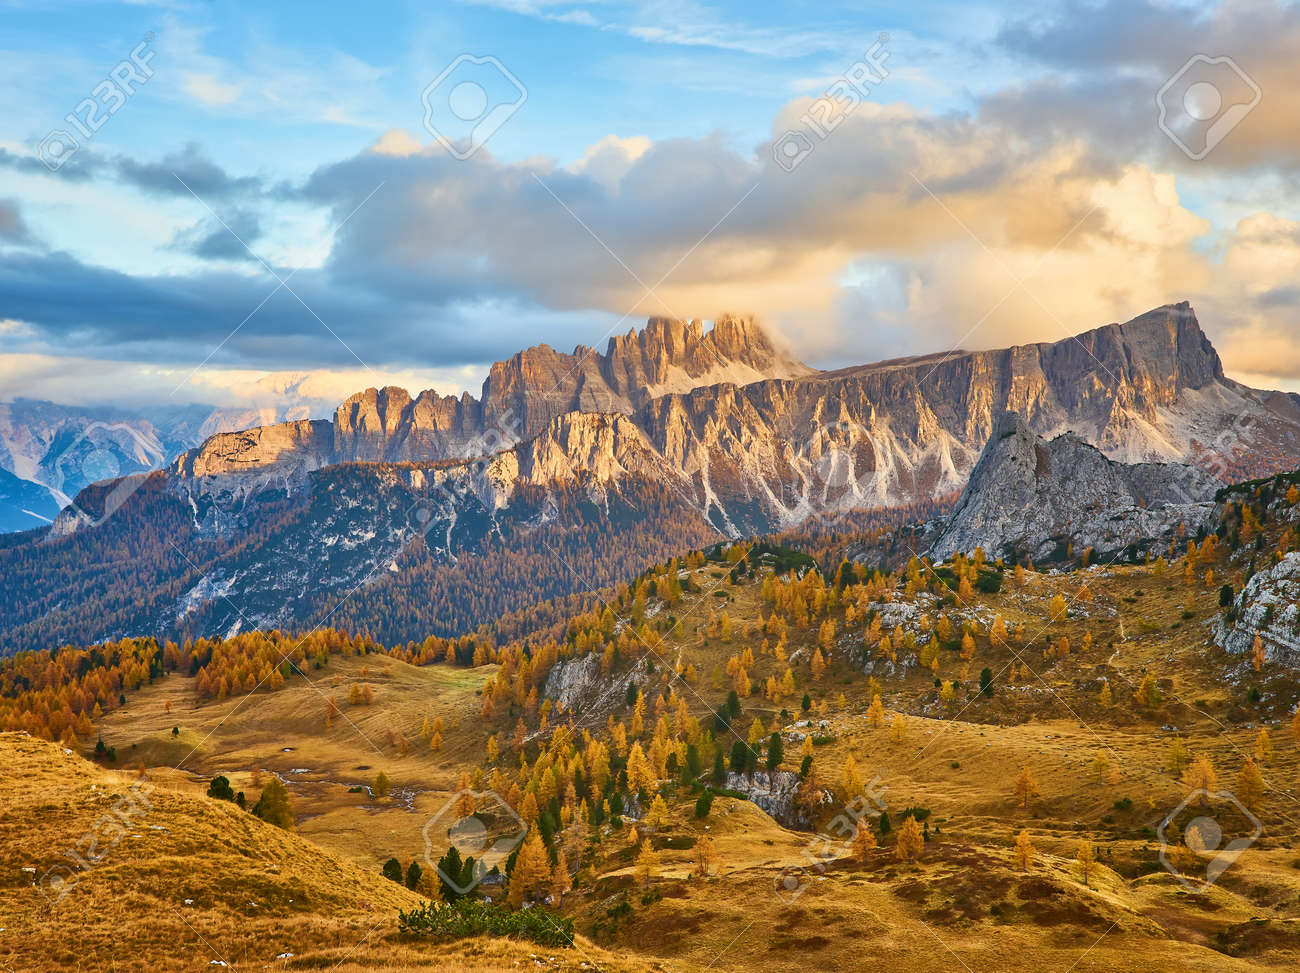 Panorama of autumn pomagagnon peaks at Cortina d'Ampezzo, Dolomites, Italy, Colorful beautiful forest and rocks mountains. - 172022702